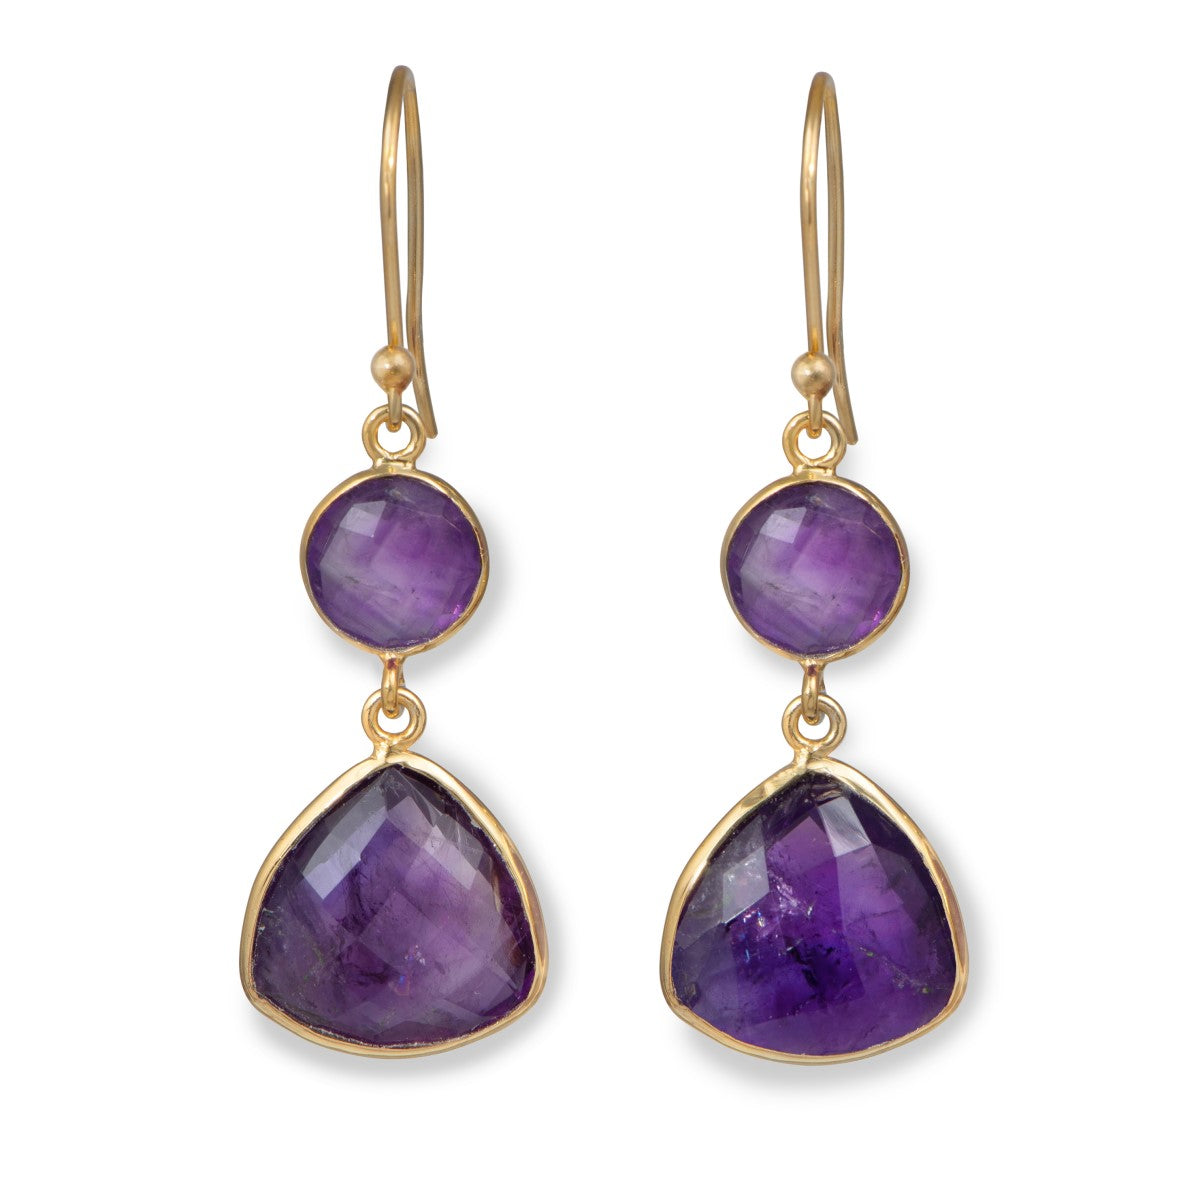 Amethyst Gemstone Earrings in Gold Plated Sterling Silver - Triangular